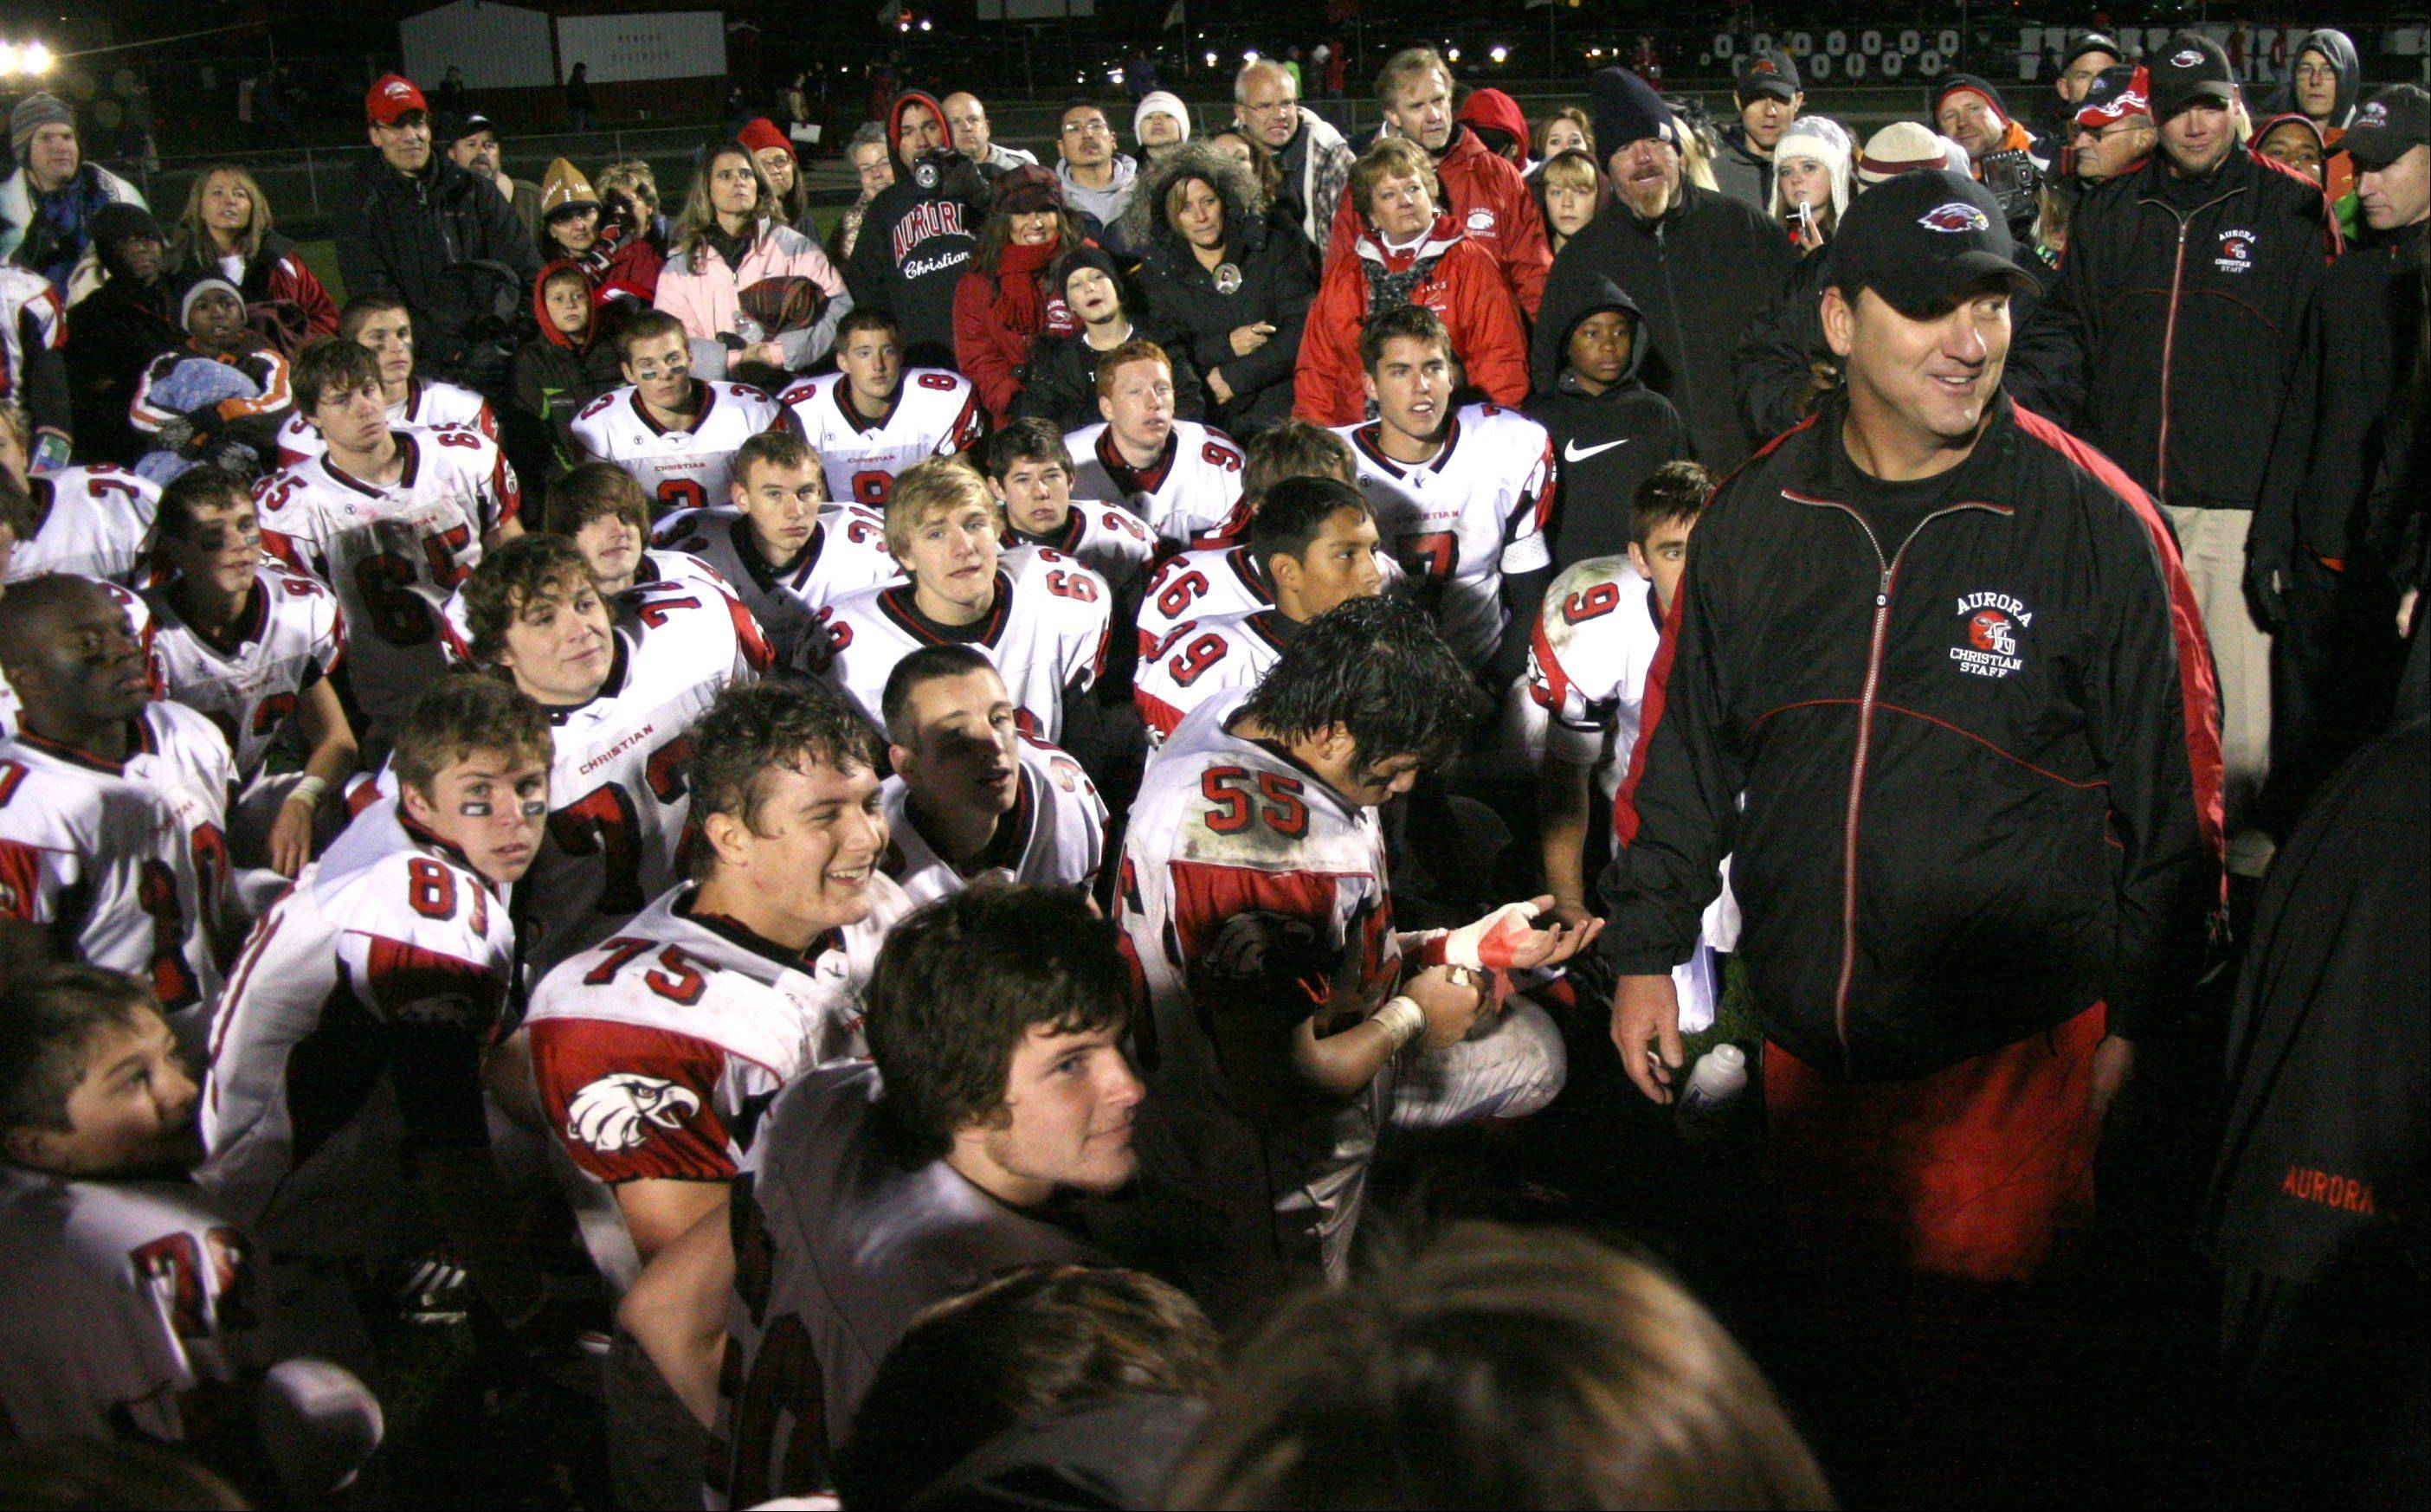 Aurora Christian football coach Don Beebe addresses his team after a playoff victory at Oregon.